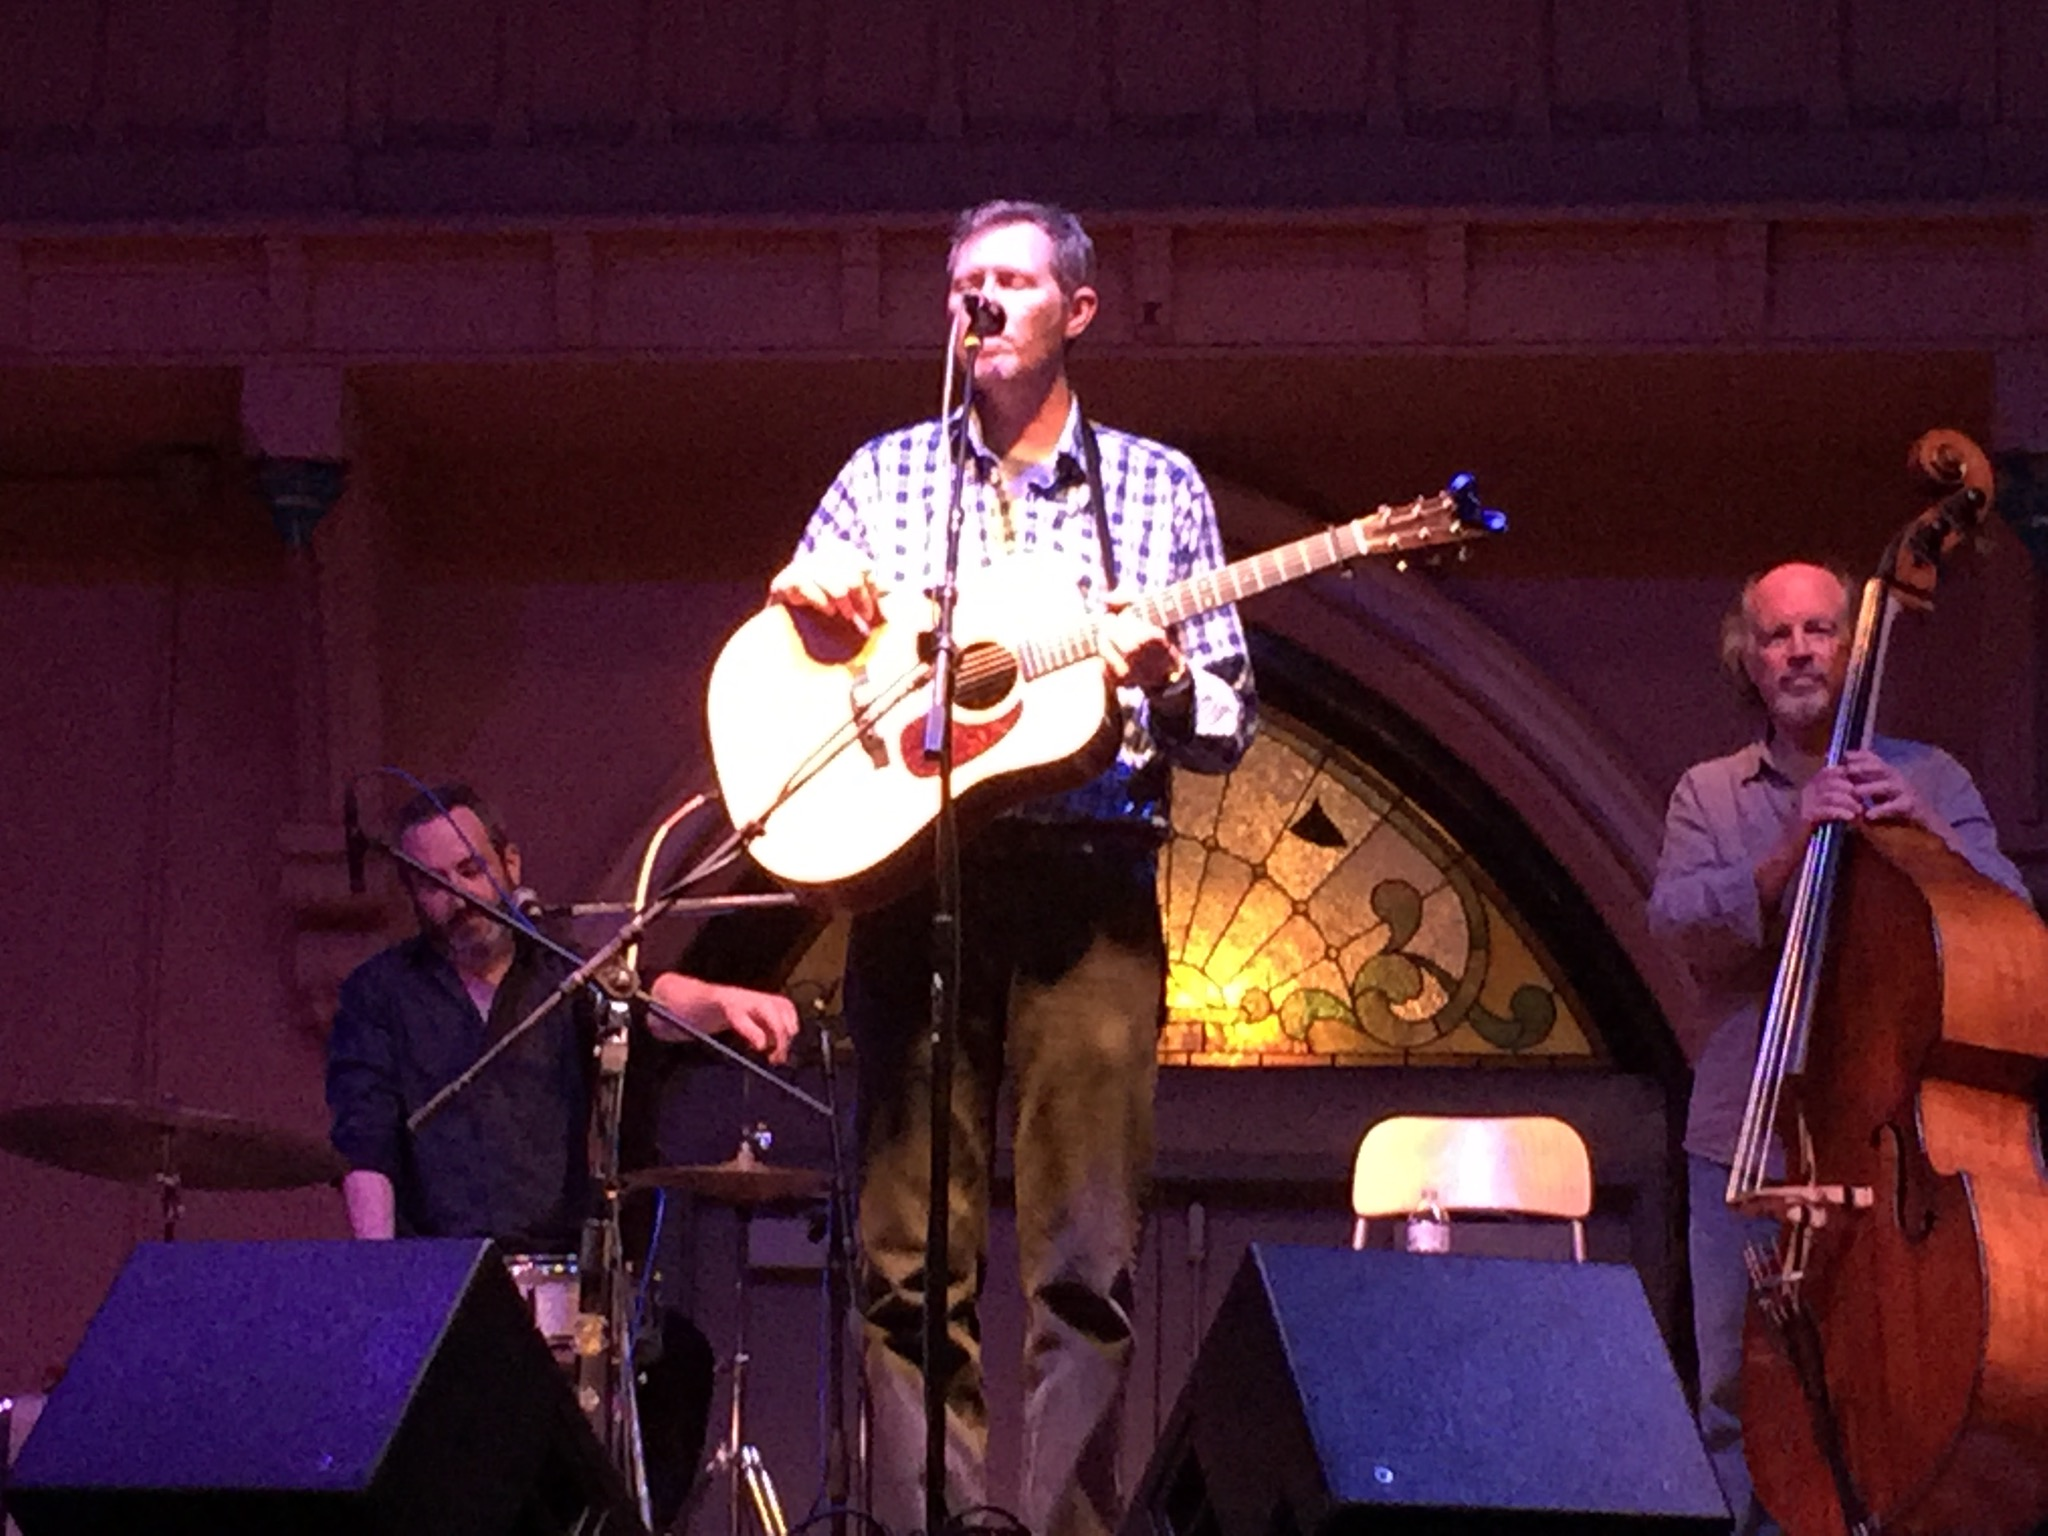 Robbie Fulks singing to a sparse but enthusiastic crowd at Southgate House Revival.  Photo taken by and the property of FourWalls.